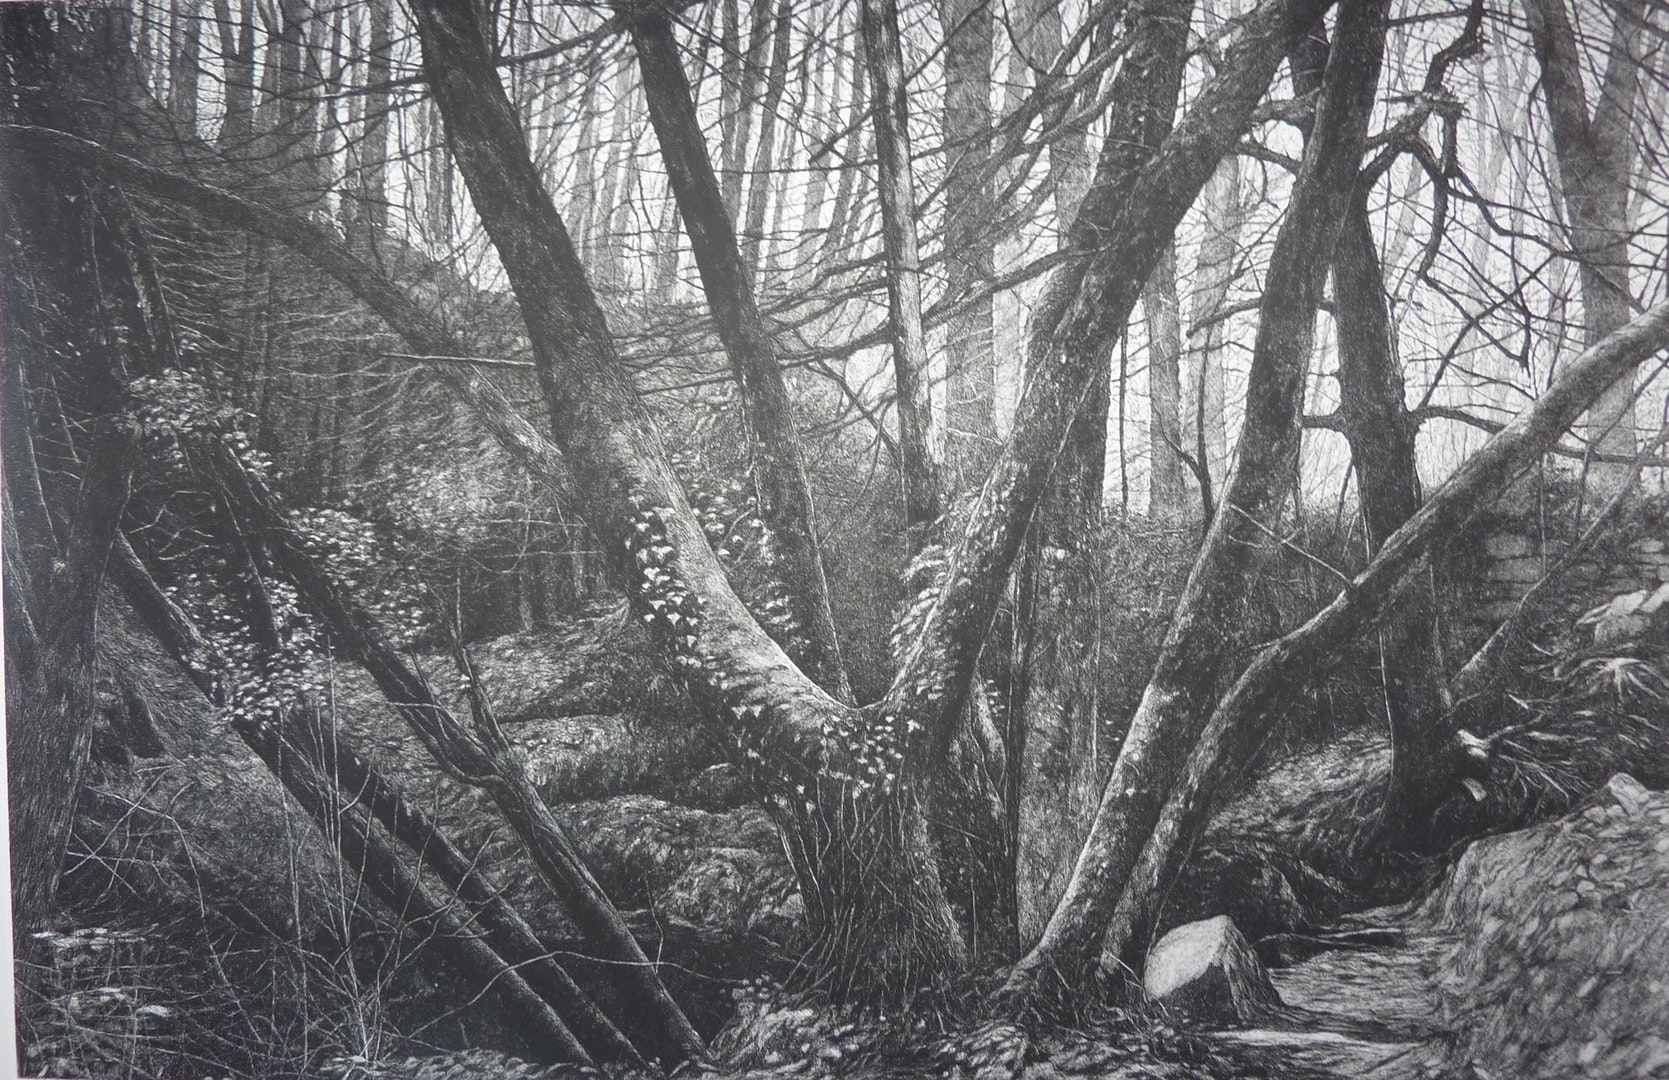 John Howard  Kennall Vale Cornwall Study 1  Etching and aquatint on paper, 60.5 x 31 x 0.05 cm